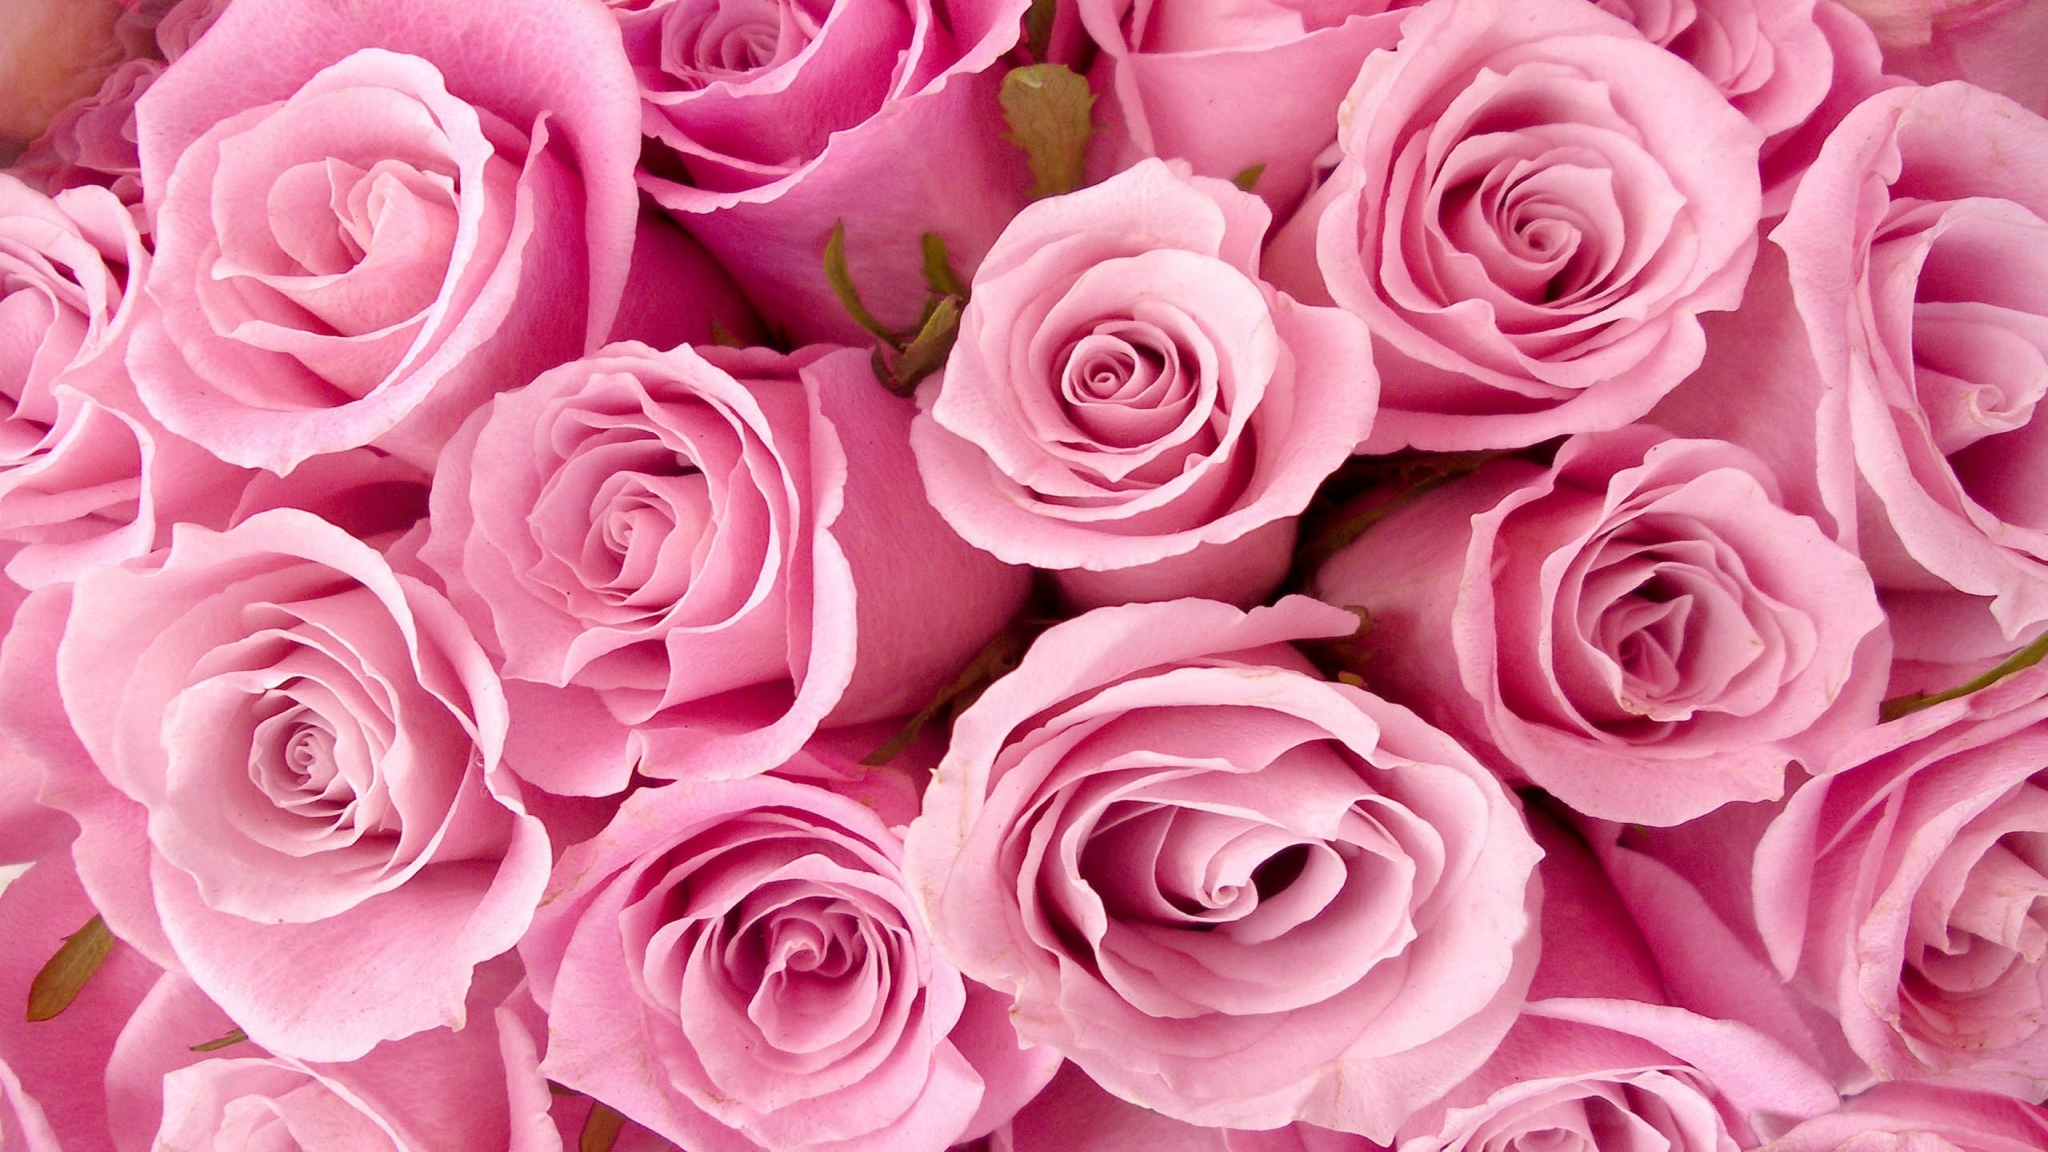 Wallpapers Special Pink Roses 1289 2560x1600 pixel Exotic Wallpaper 2048x1152